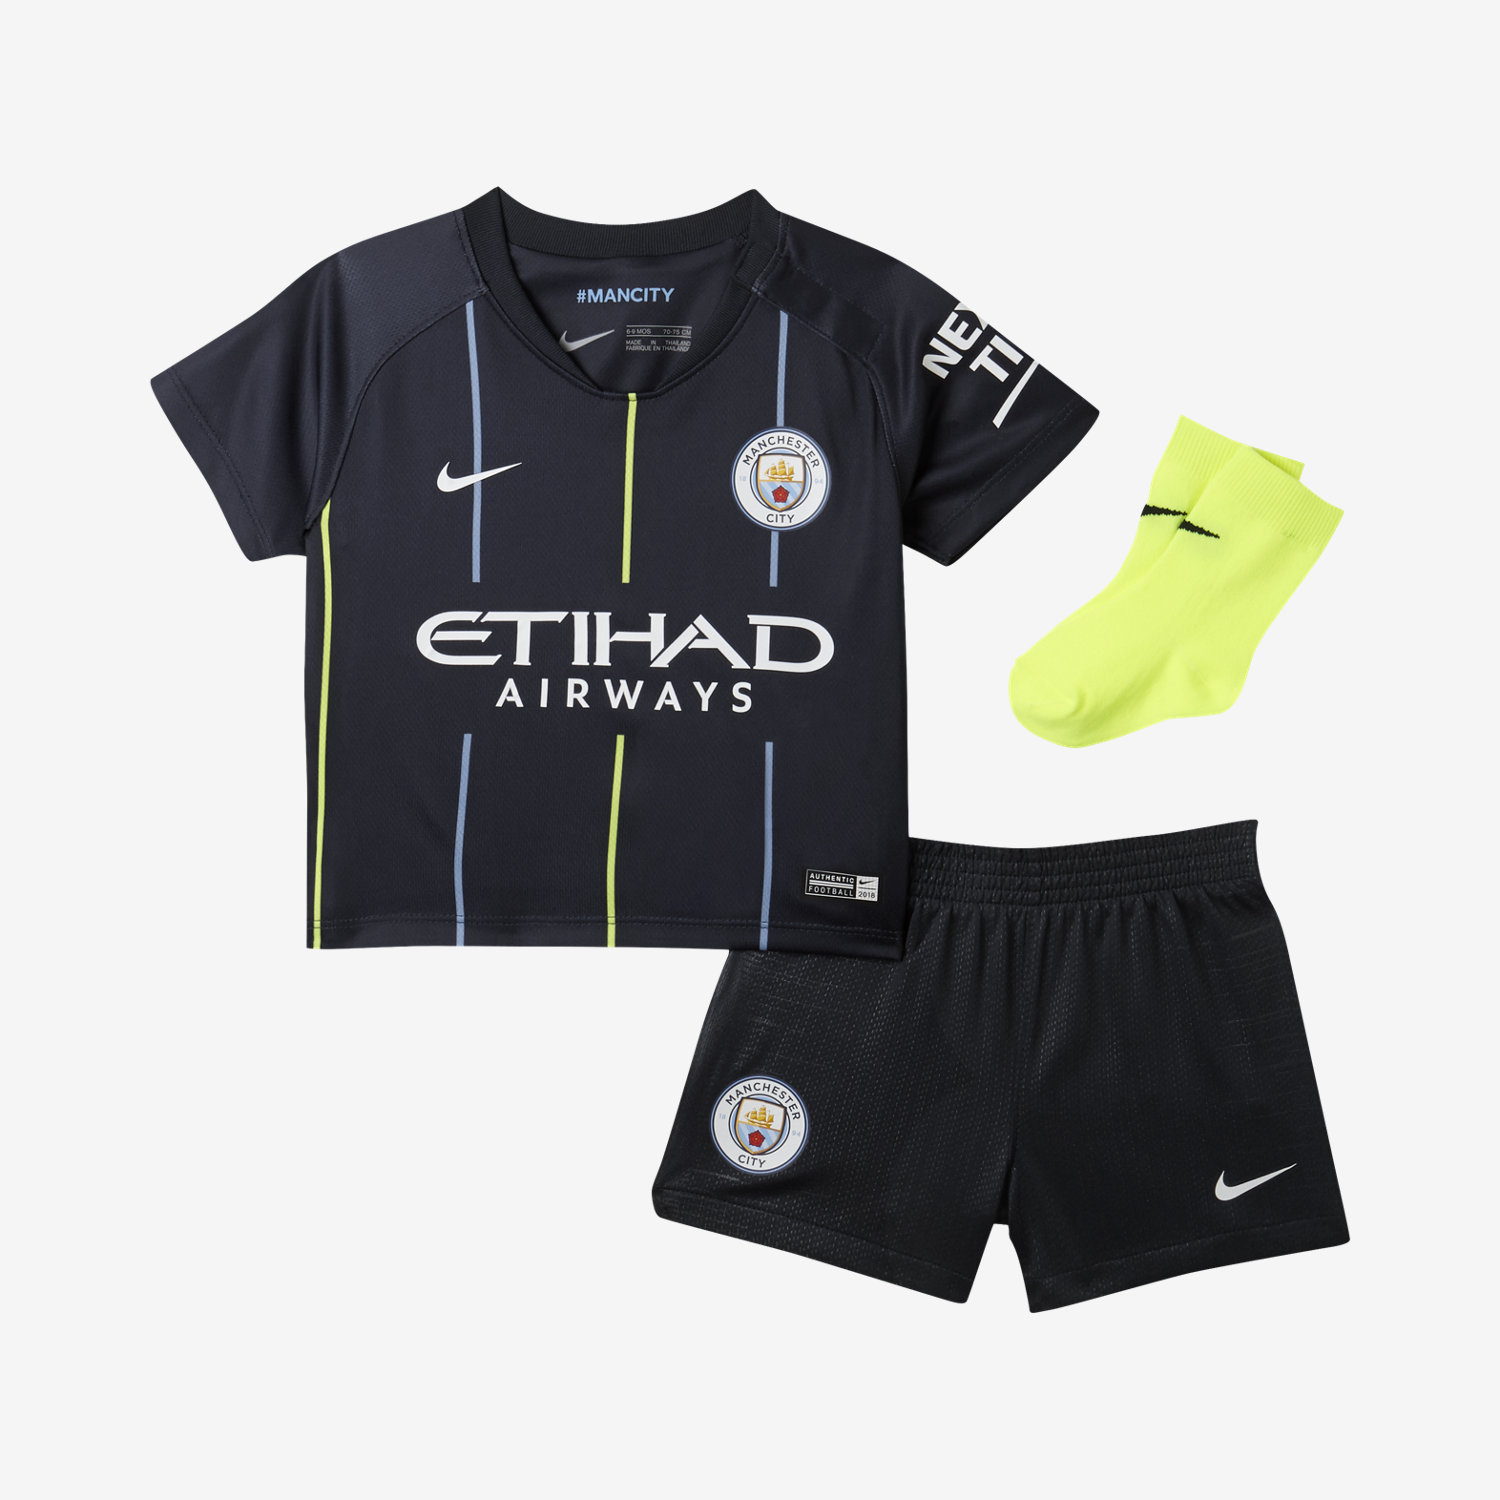 95ccbfd1f 2018 19 Manchester City FC Stadium Away. Baby and Toddler Football Kit£27.47